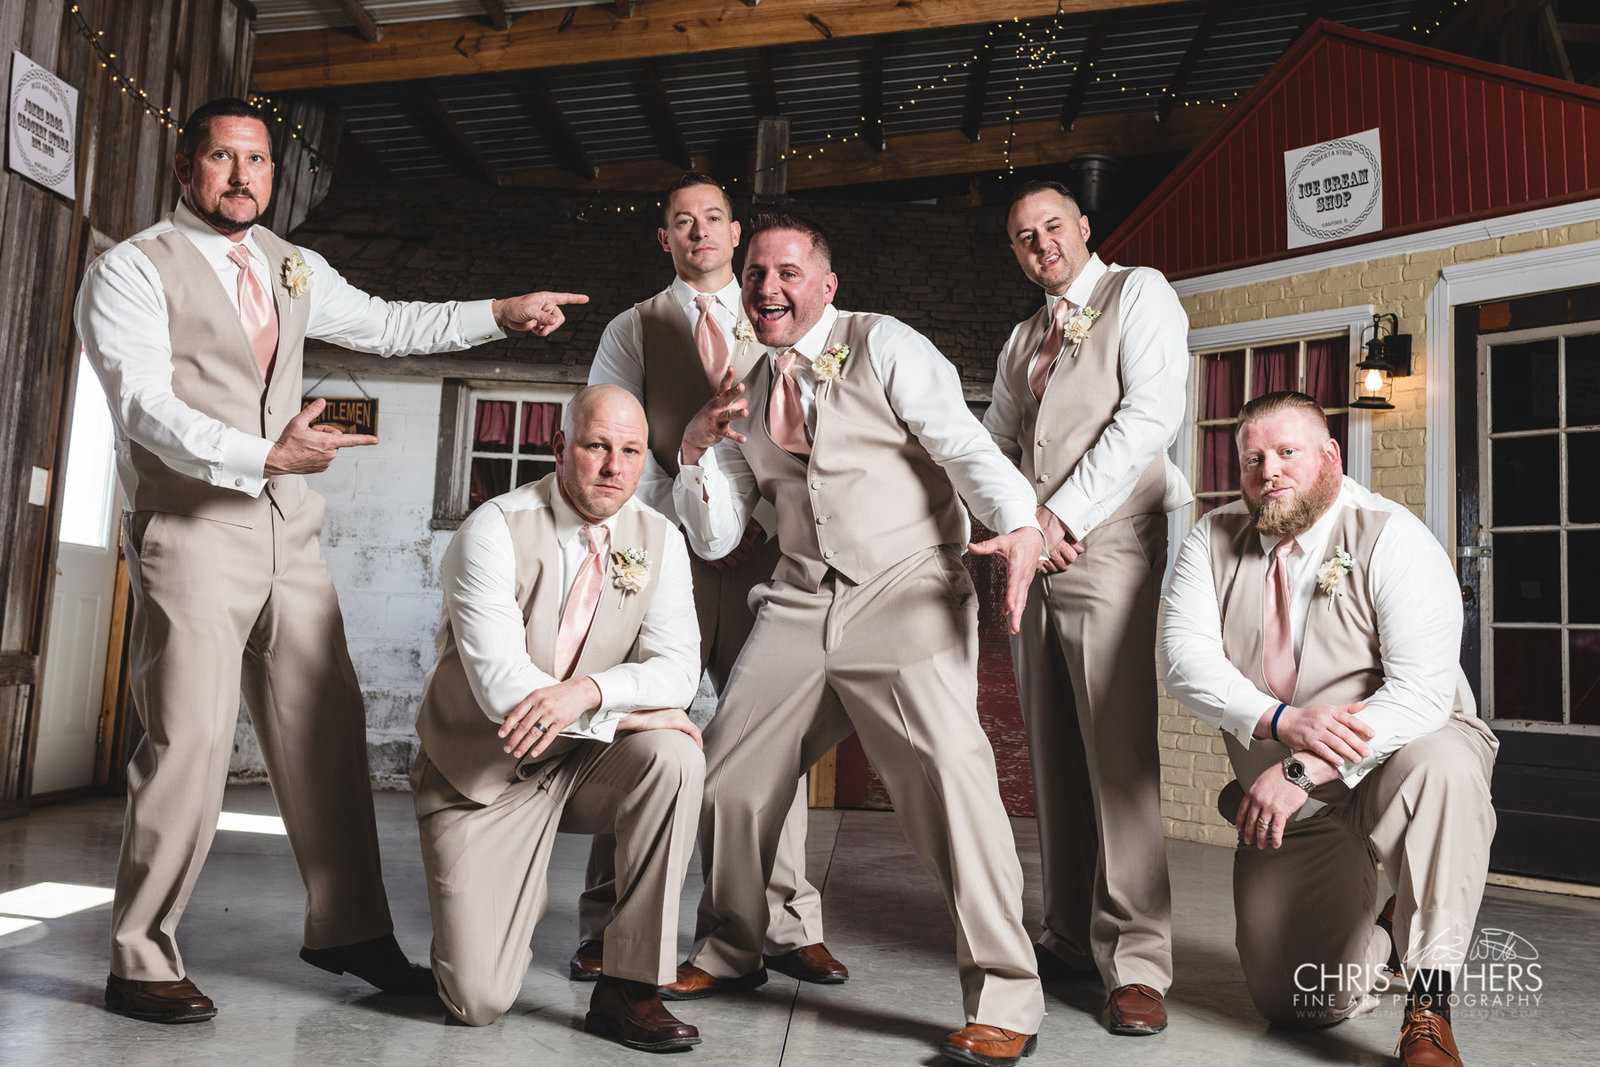 Springfield Illinois Wedding Photographer - Chris Withers Photography (154 of 159)